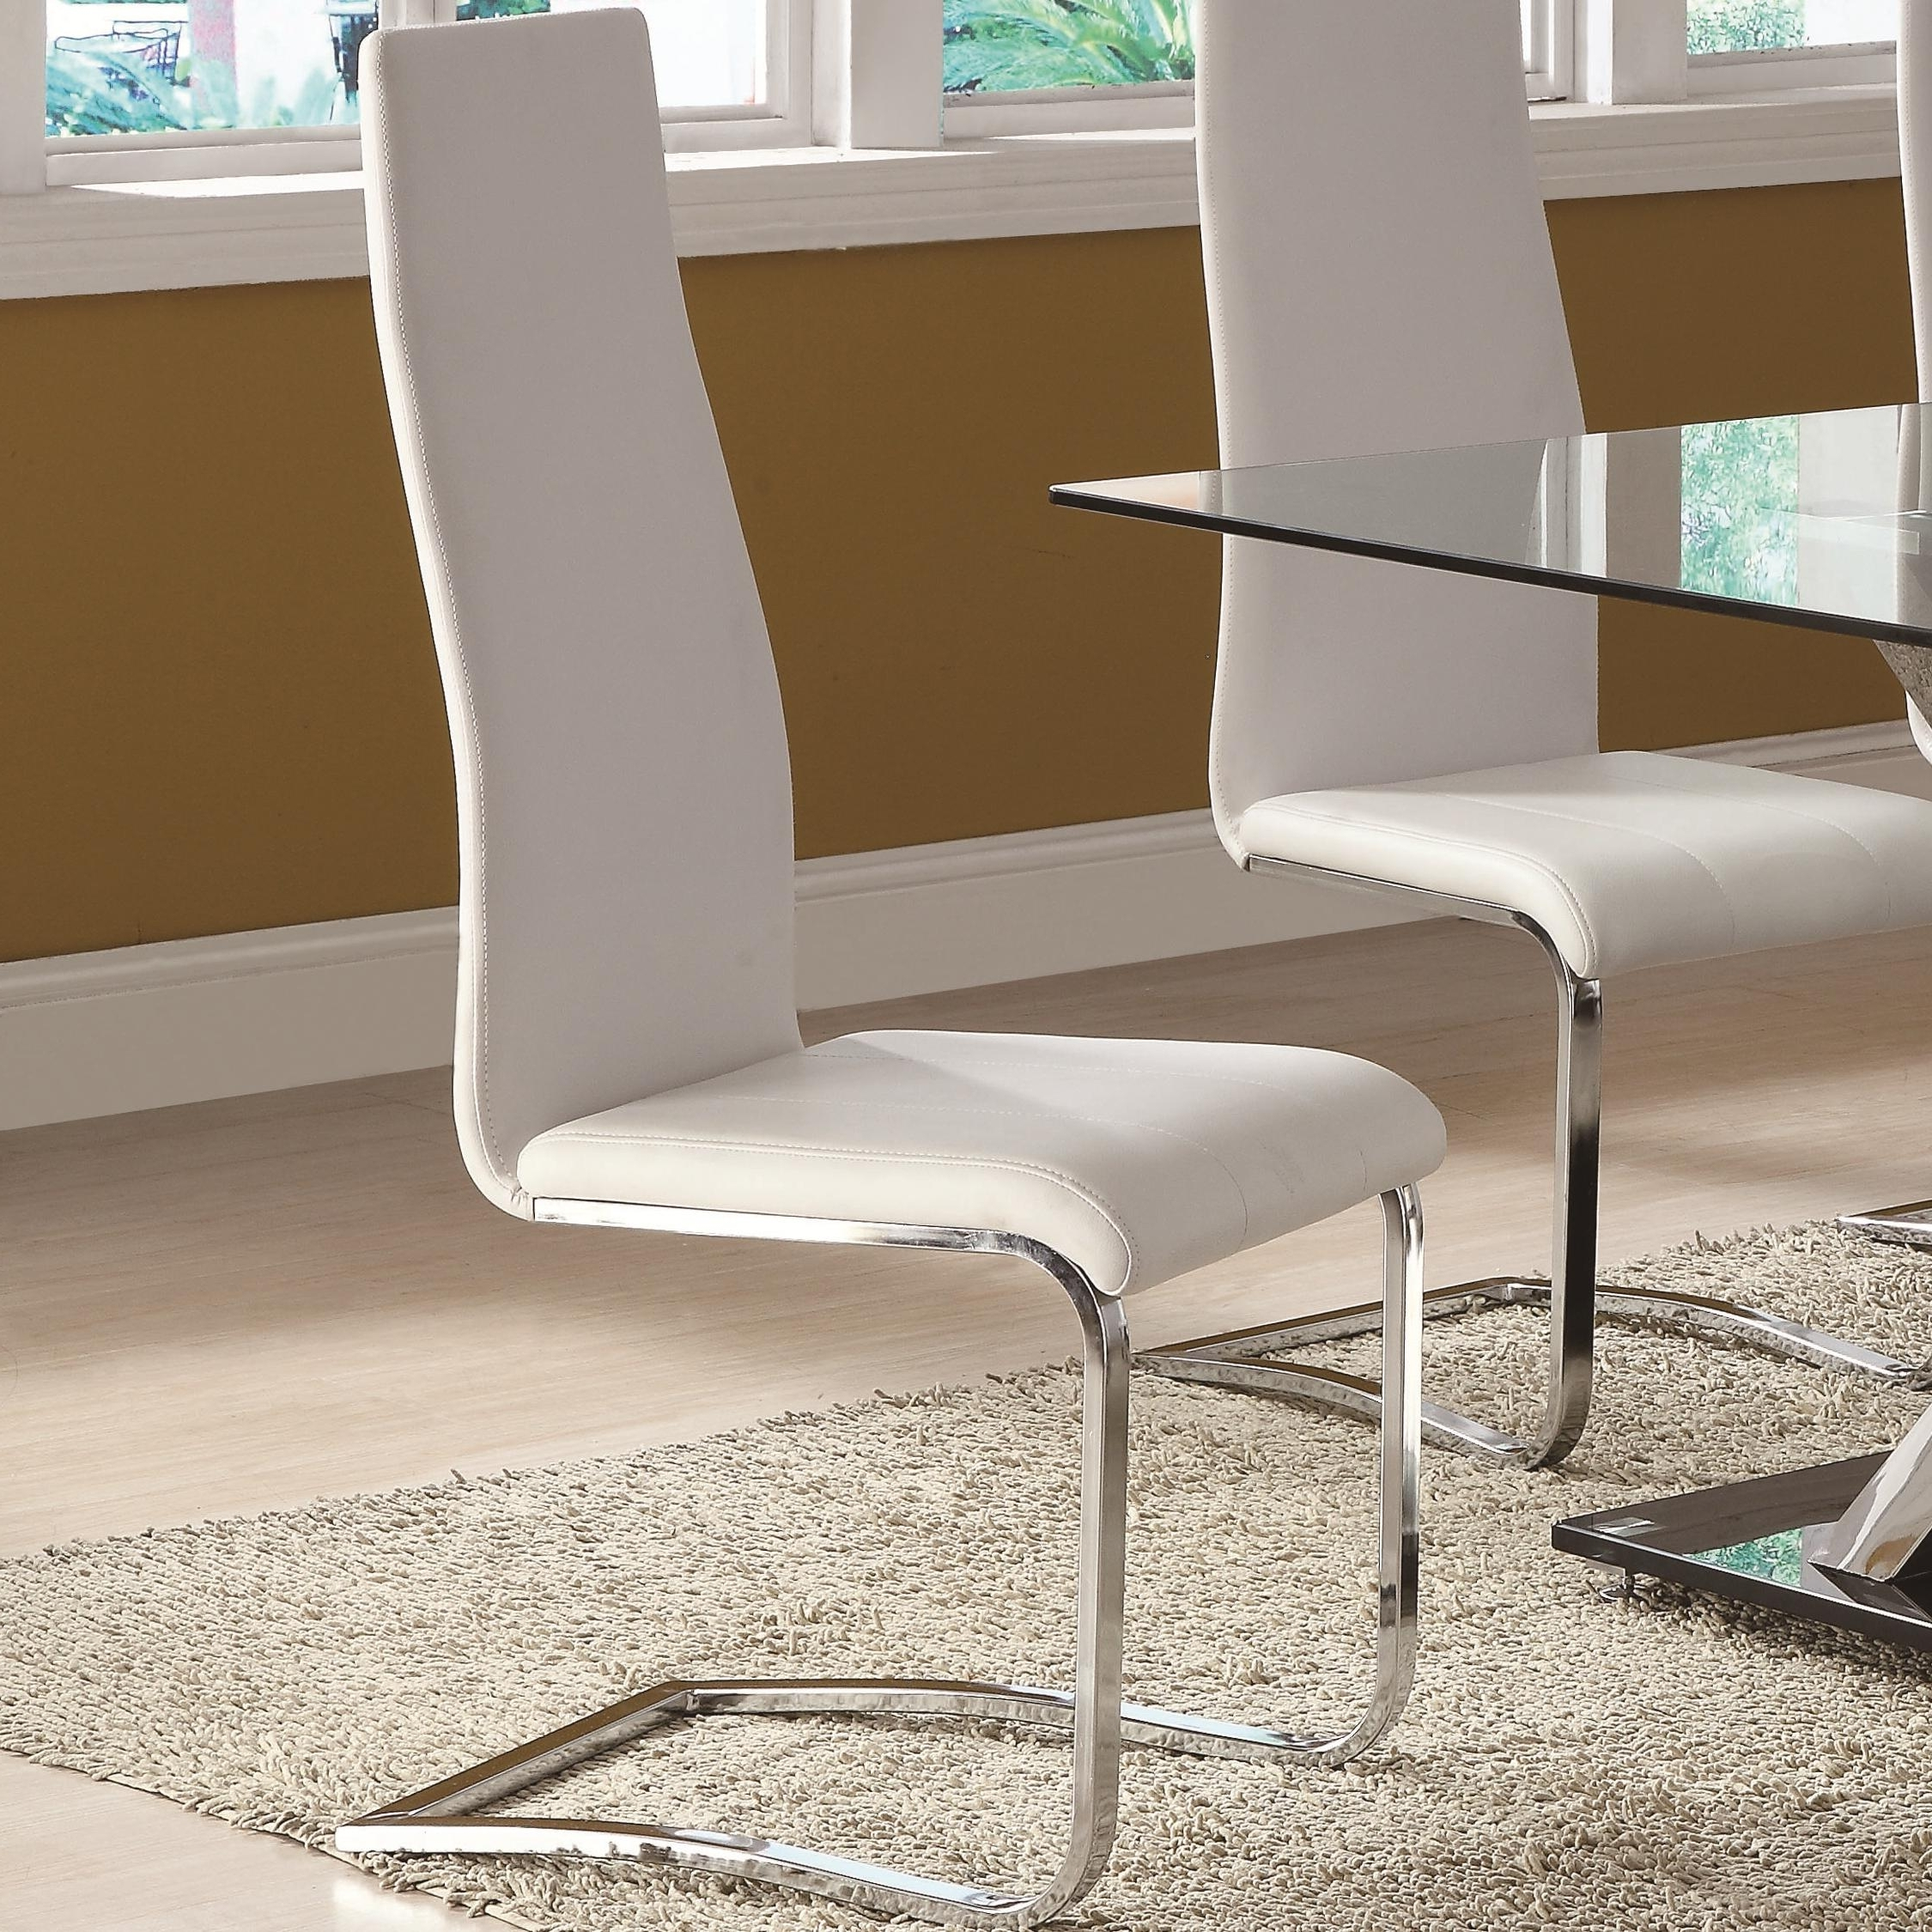 Modern Dining White Faux Leather Dining Chair With Chrome Legs With Recent White Leather Dining Chairs (View 11 of 25)